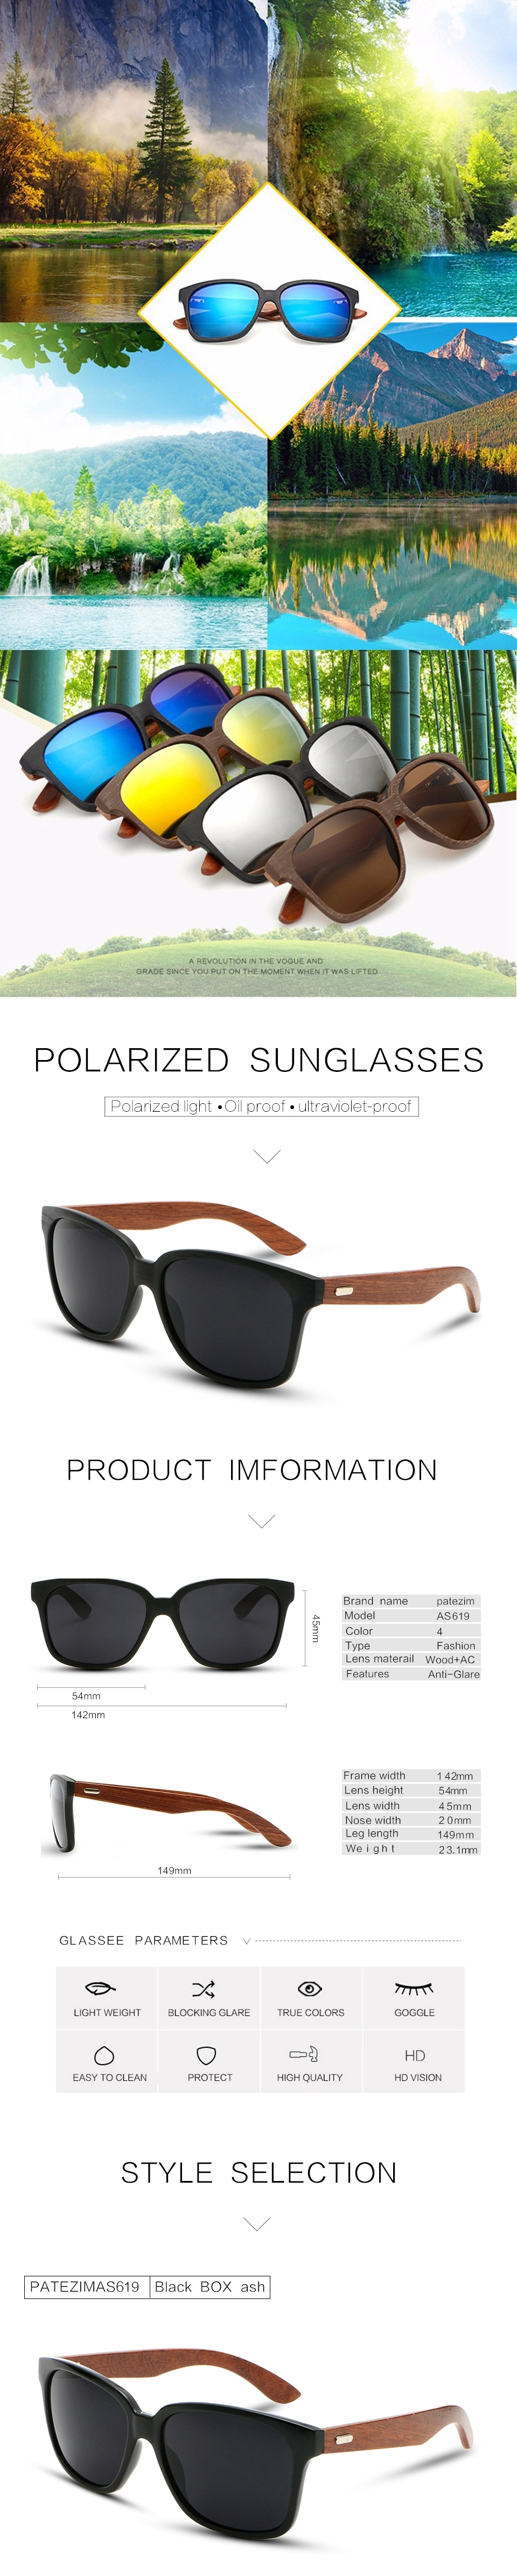 5775554f1a oversized sunglasses are necessary for us in sunning days especially hot  summer. The reason why best sunglasses for men are so popular is that they  are not ...